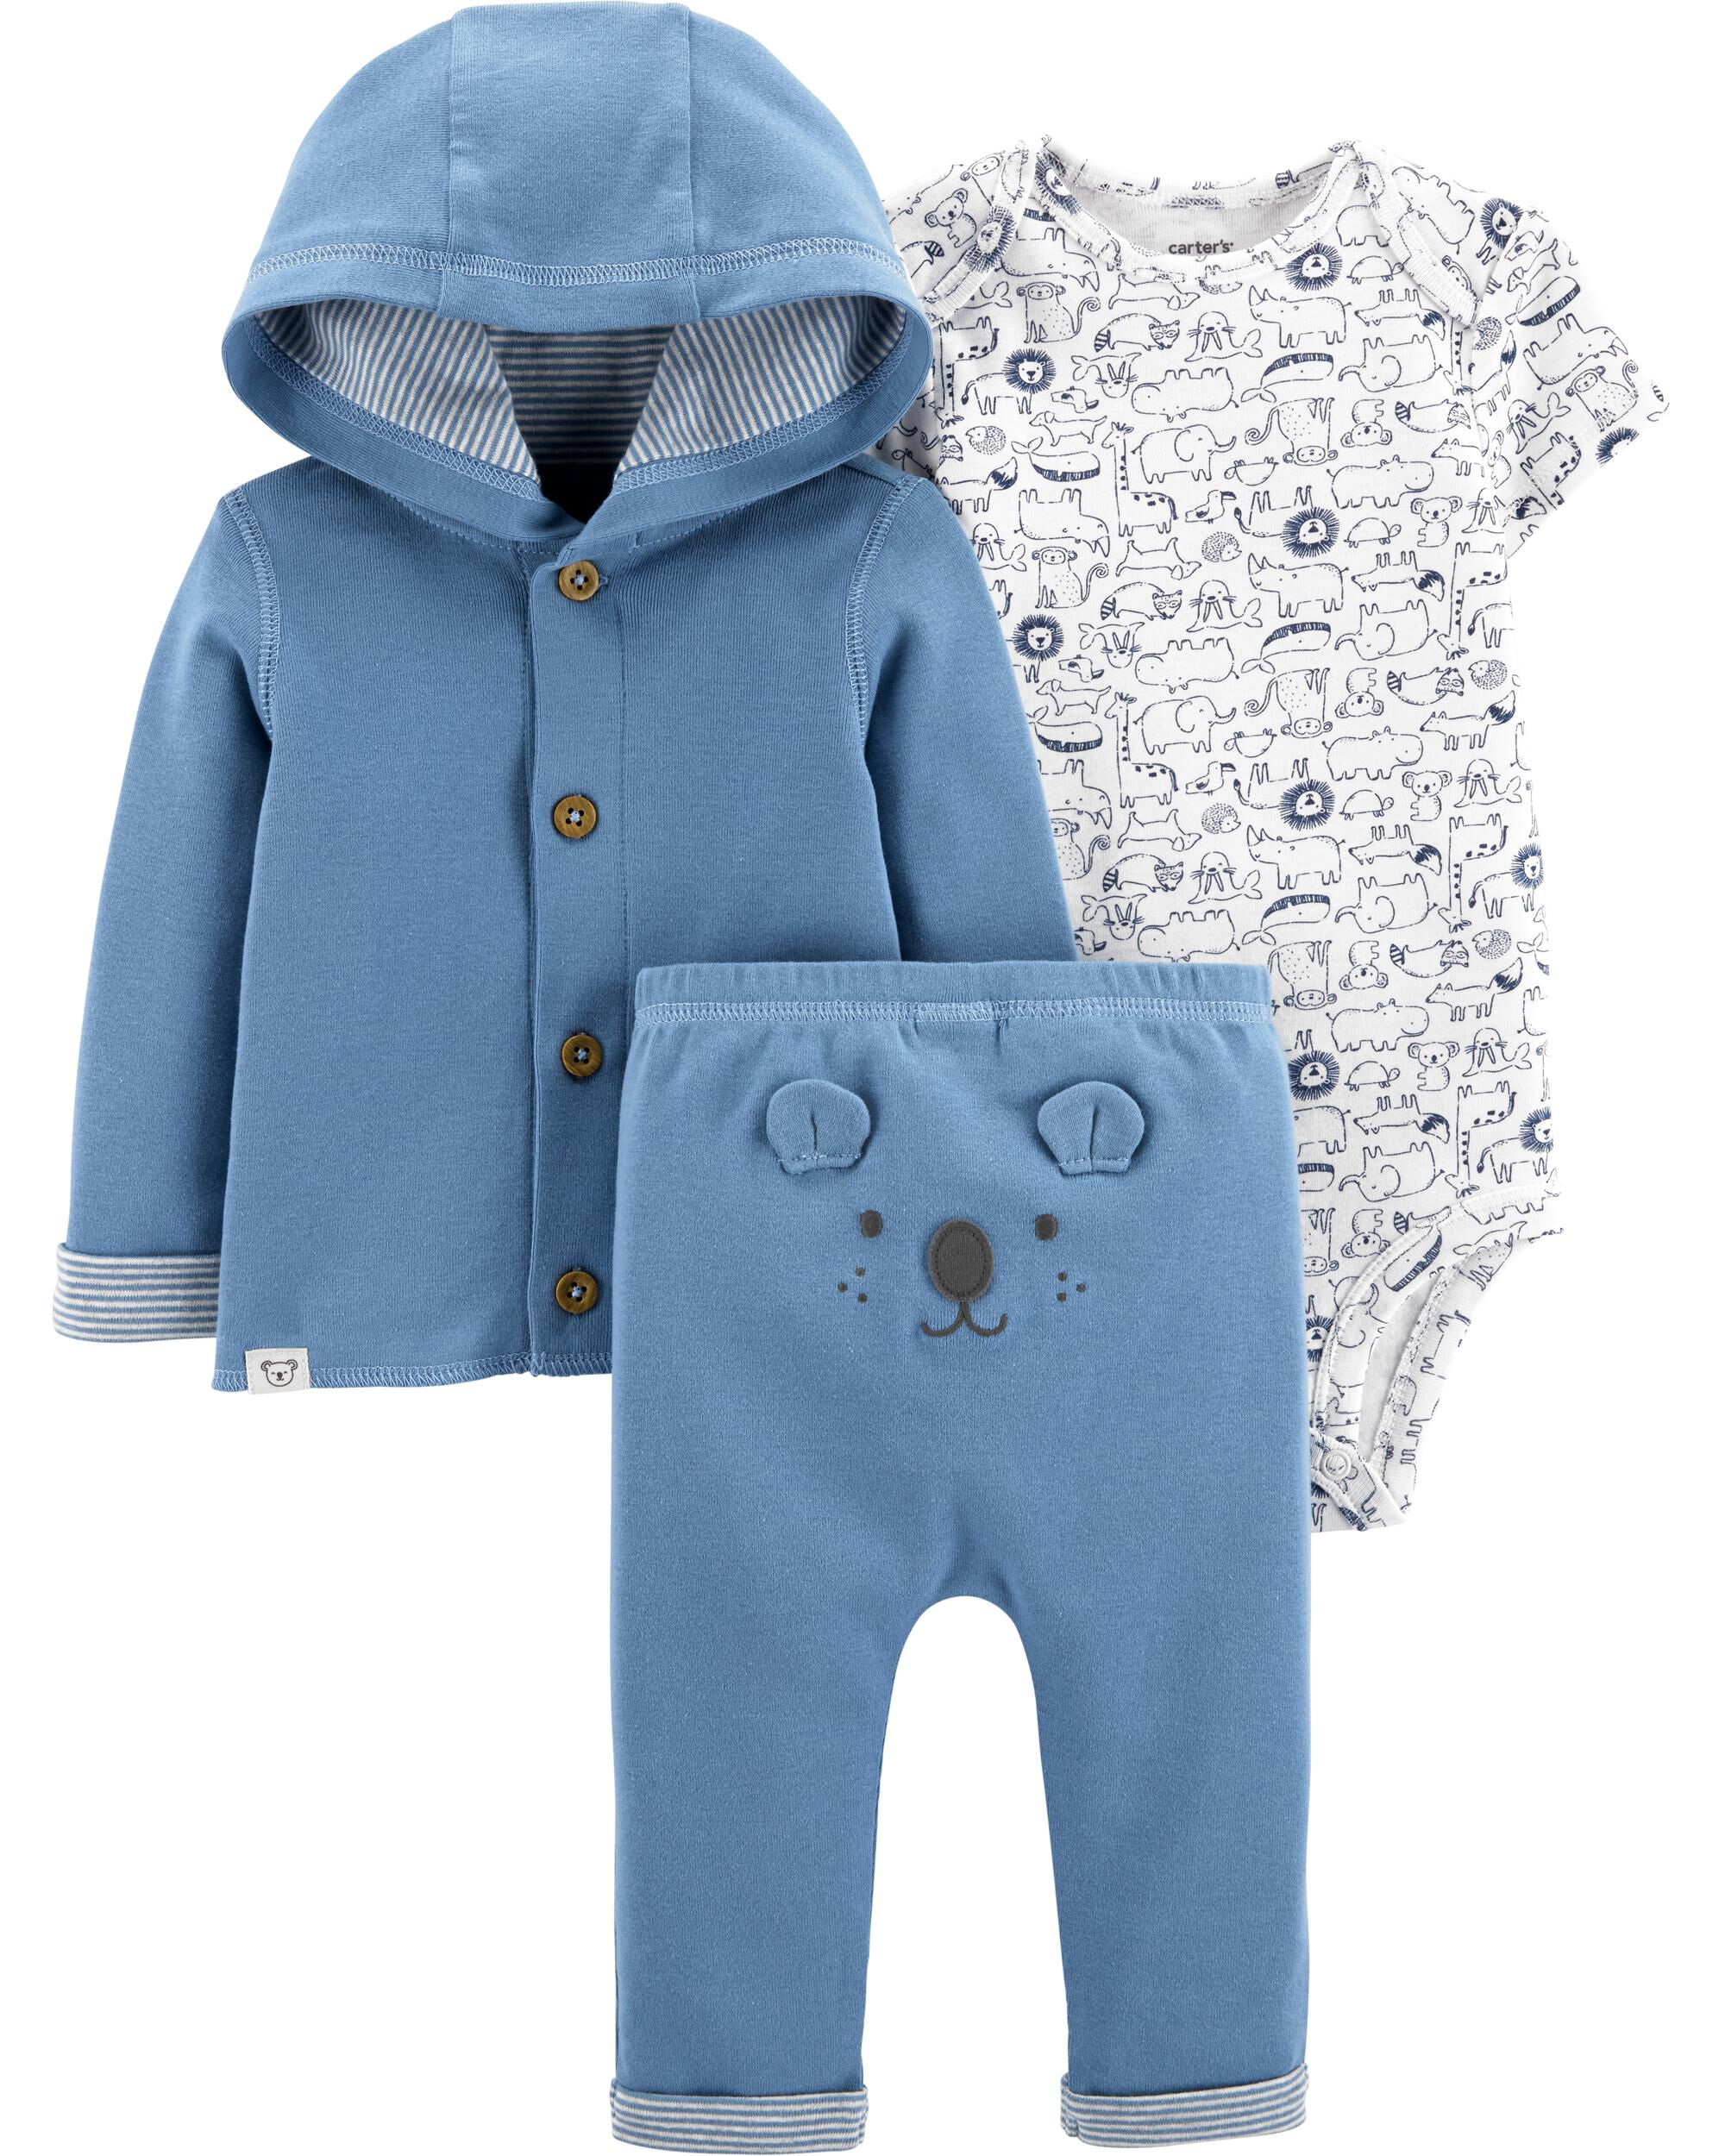 3-Piece Koala Little Cardigan Set